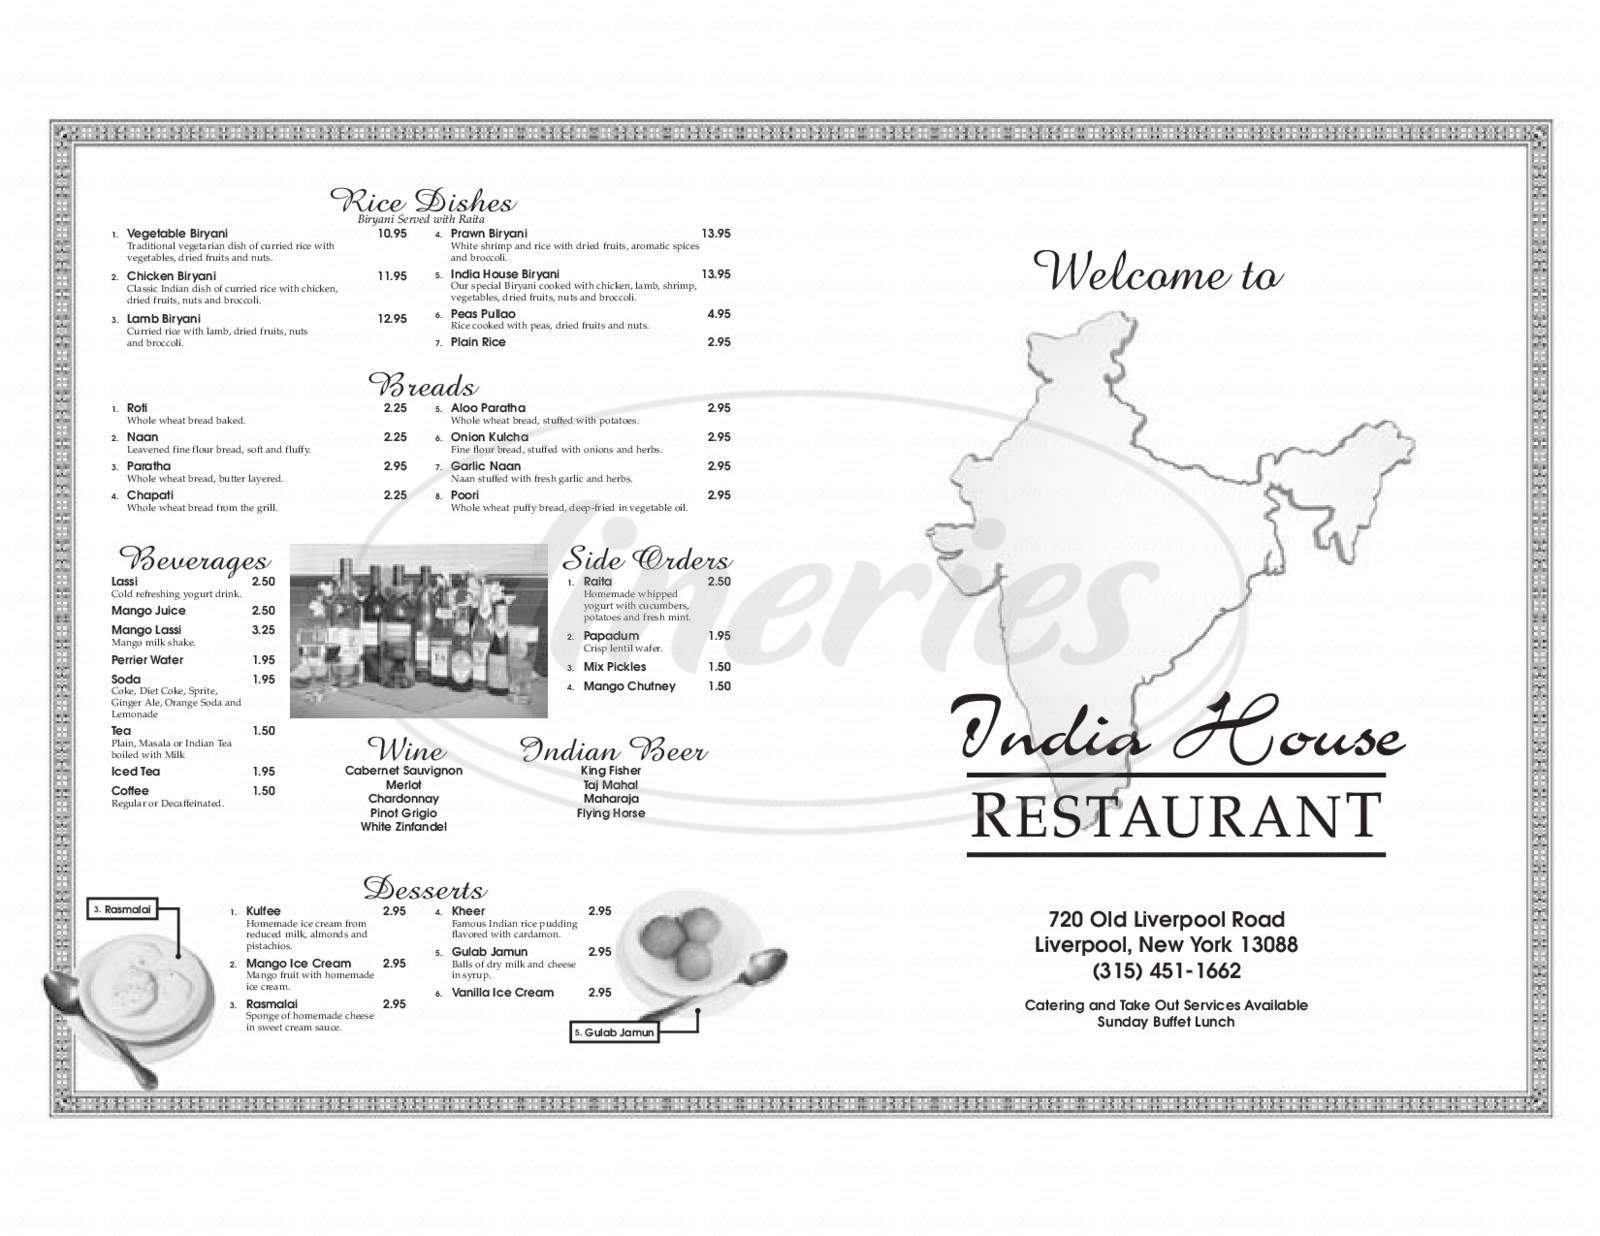 menu for India House Restaurant